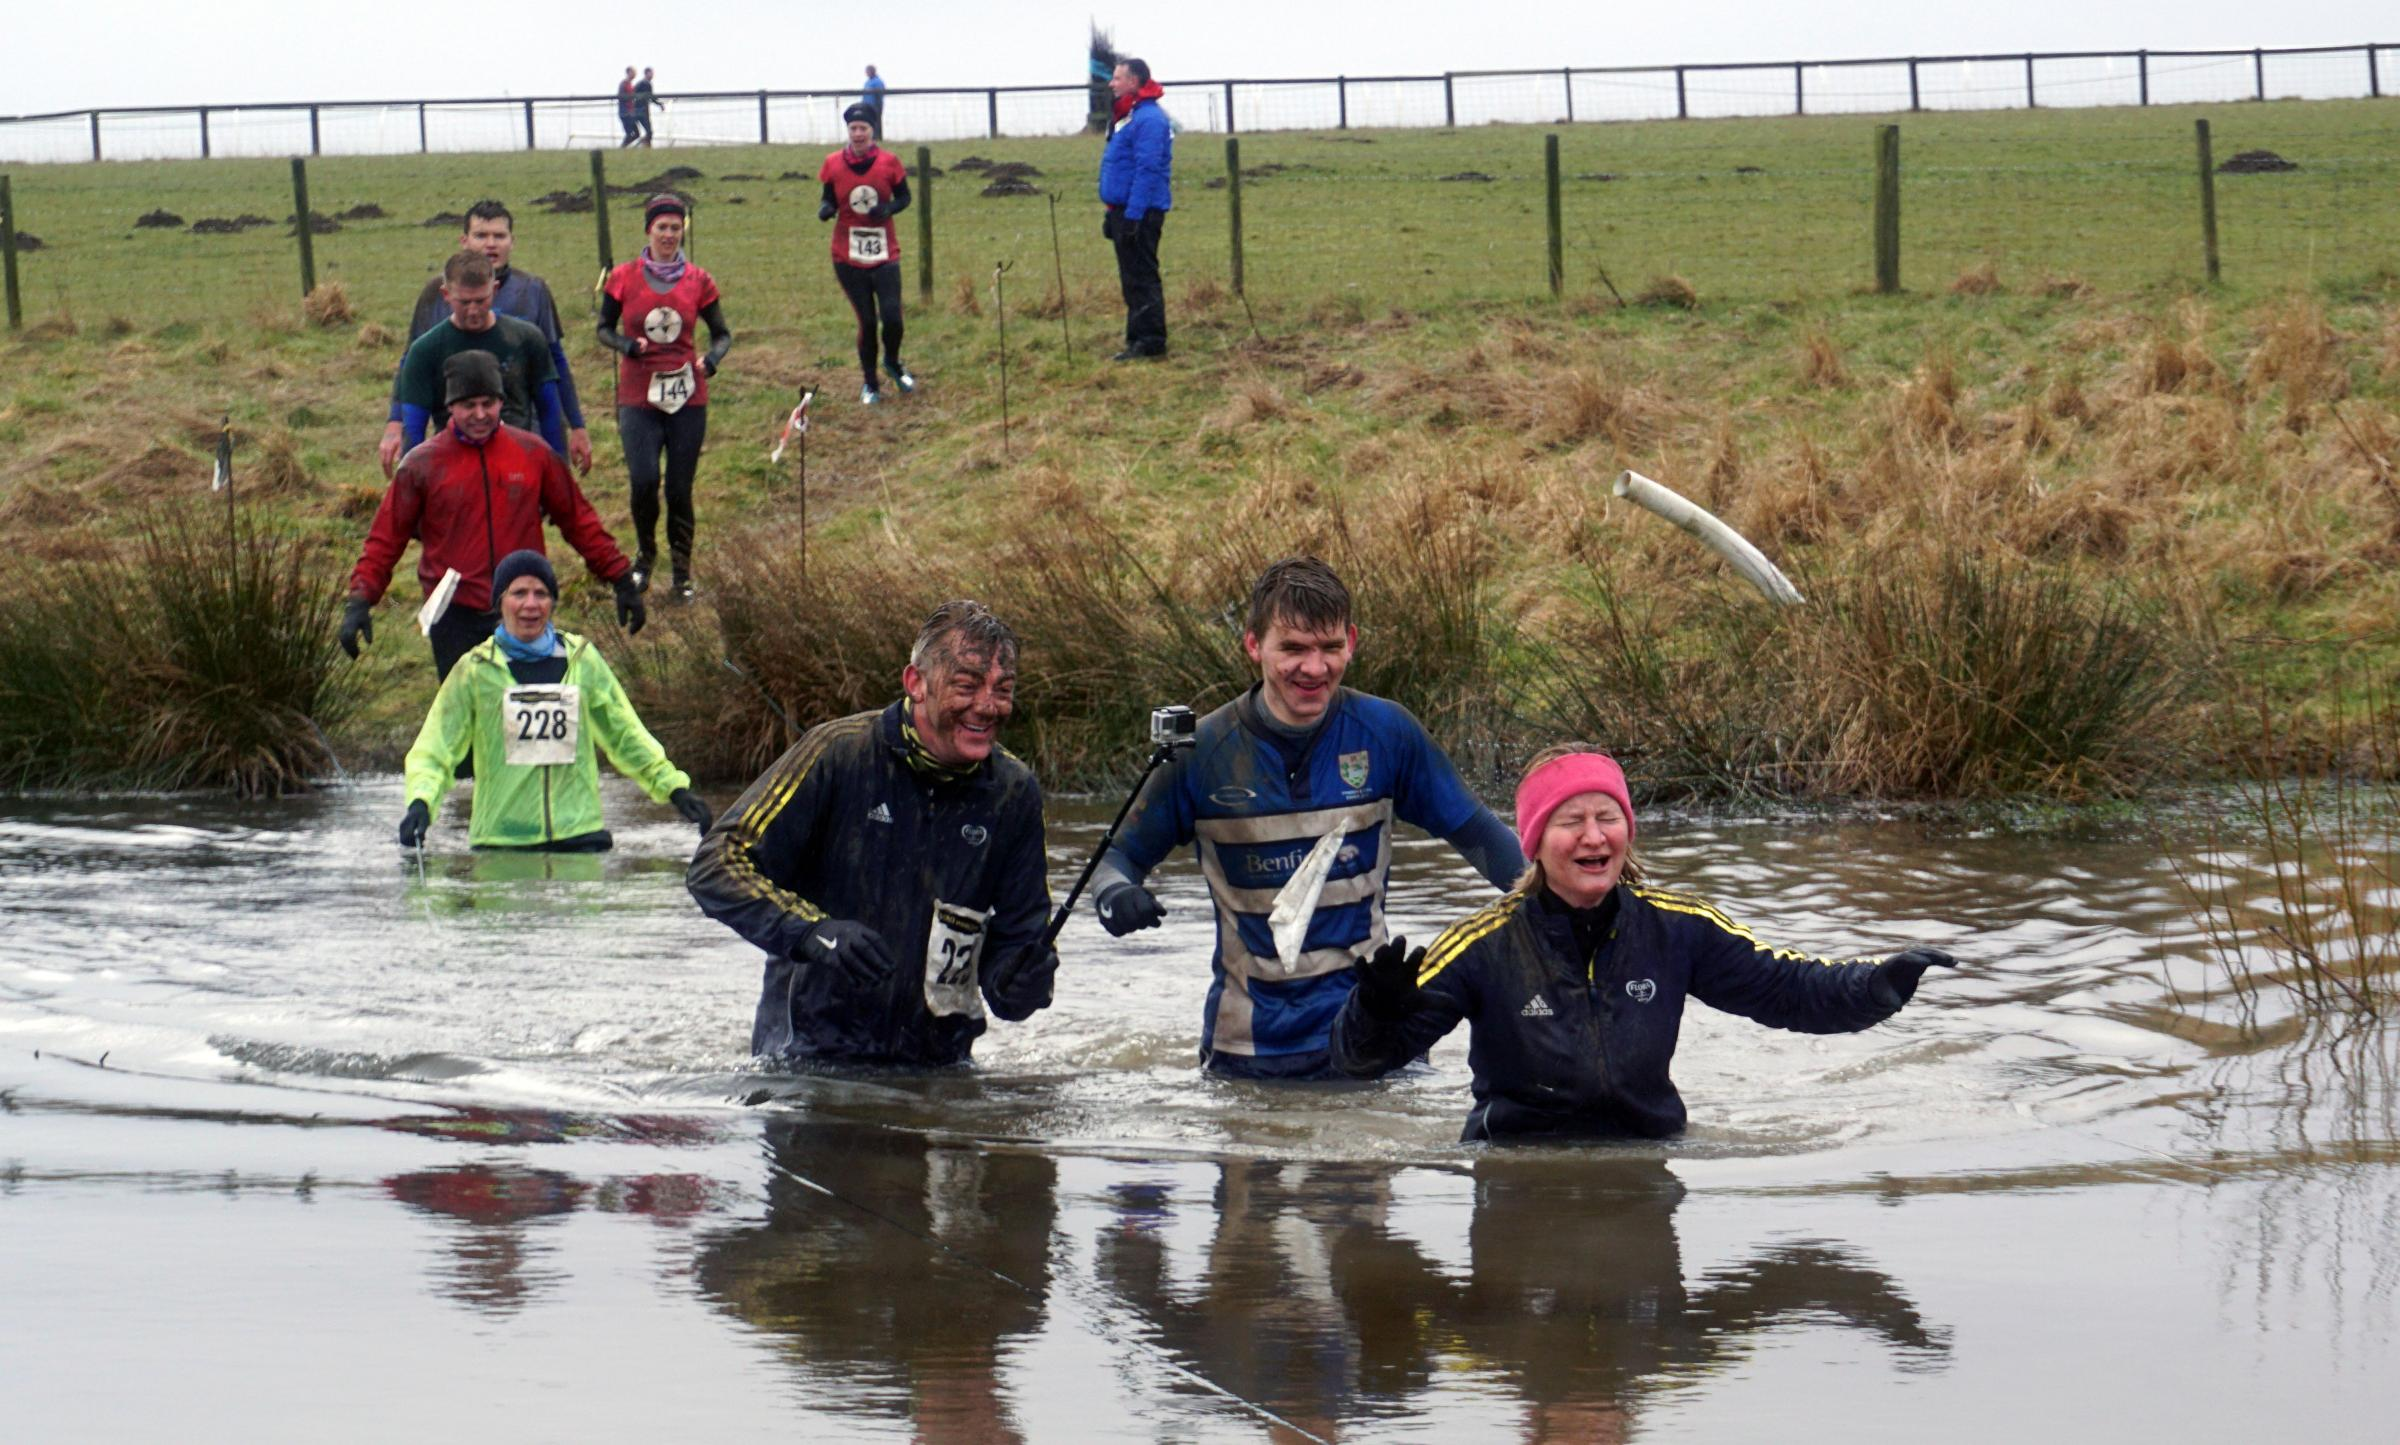 Participants in the 2016 Mad March Mare wade through the ice cold lake at Hexham Racecourse. 						    Photo: www.thecameracowboy.com